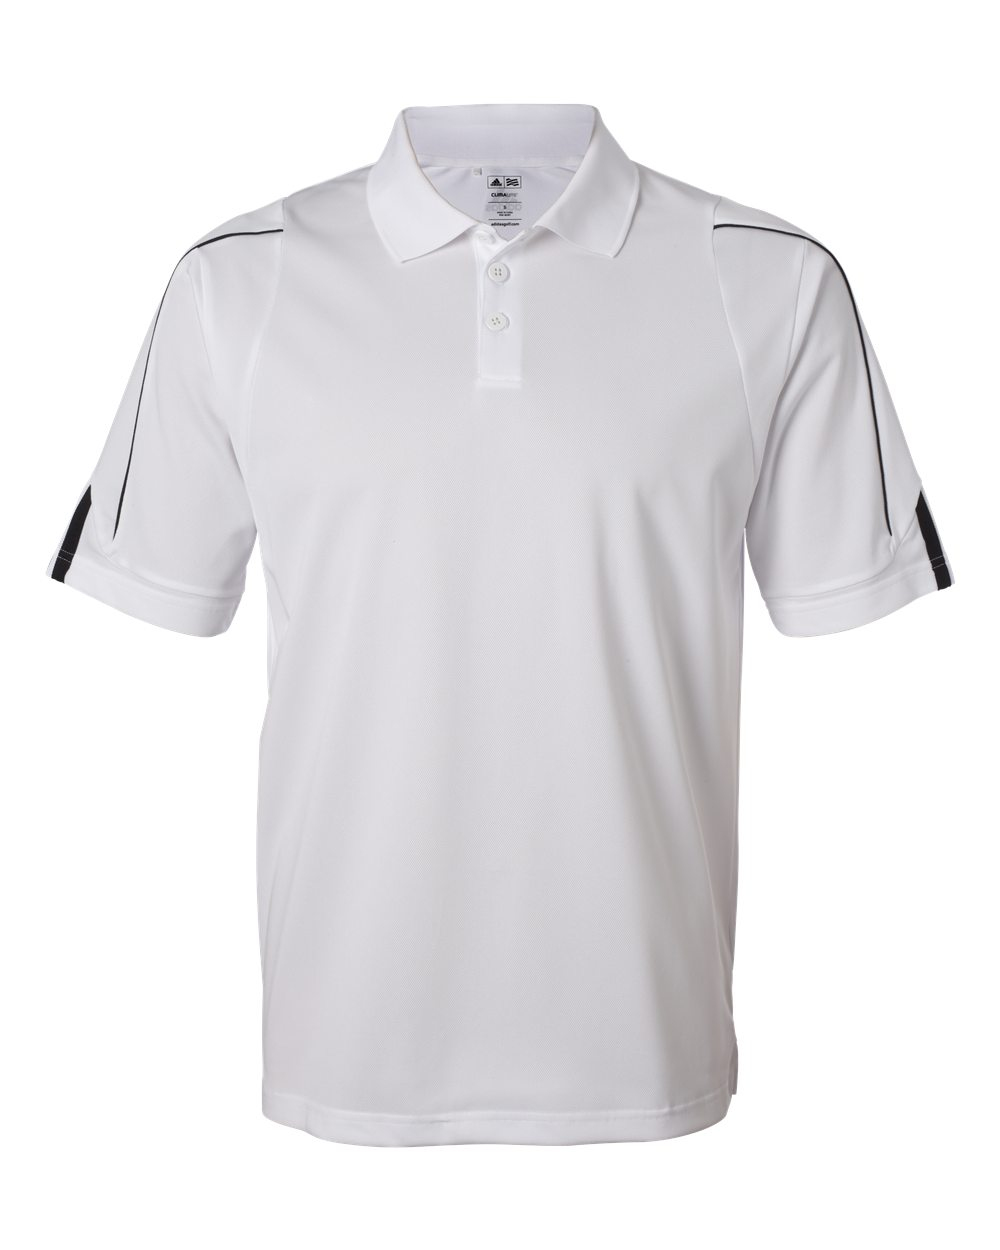 3-Stripes Cuff Sport Shirt-Adidas